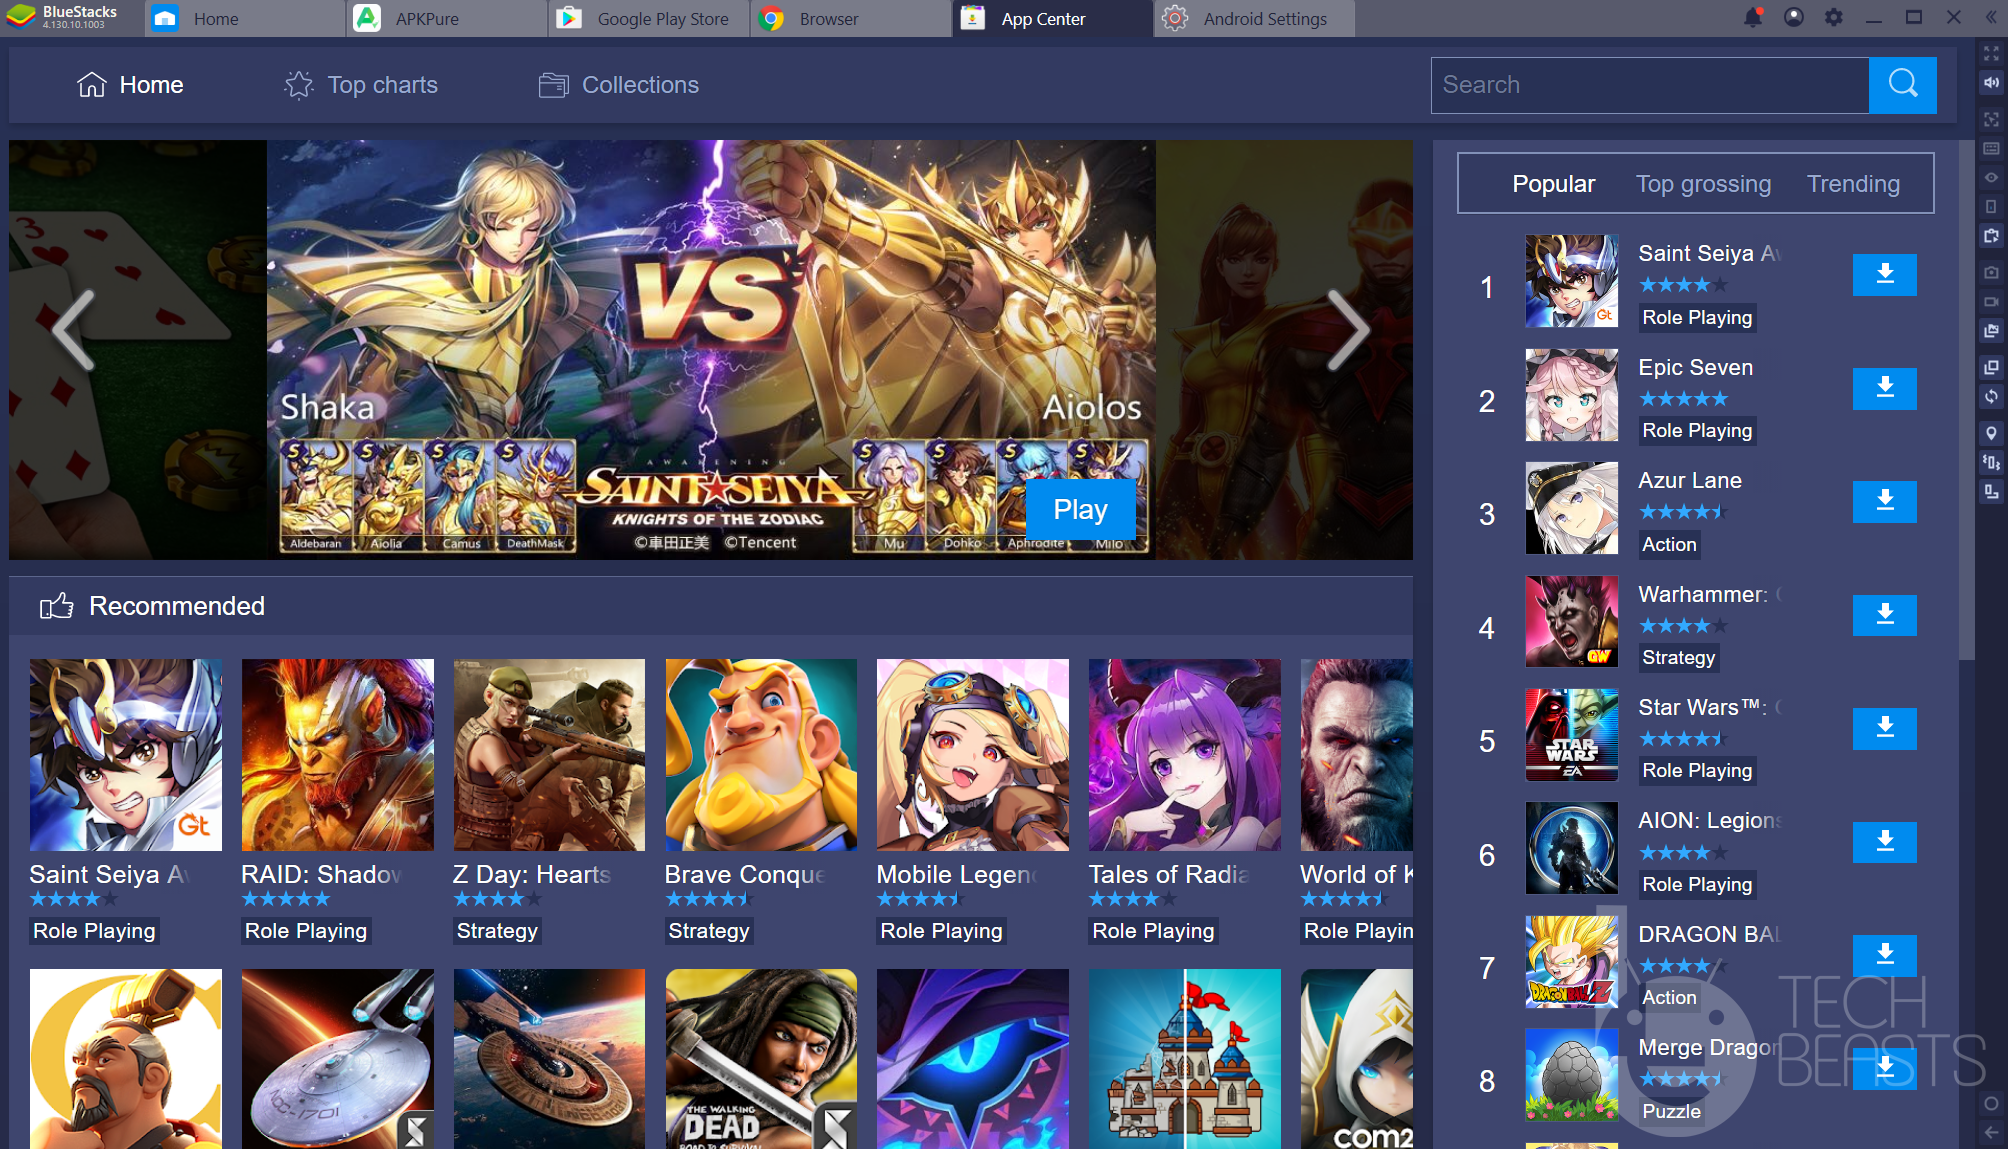 BlueStacks 4.1 for Windows 10 & Windows 8